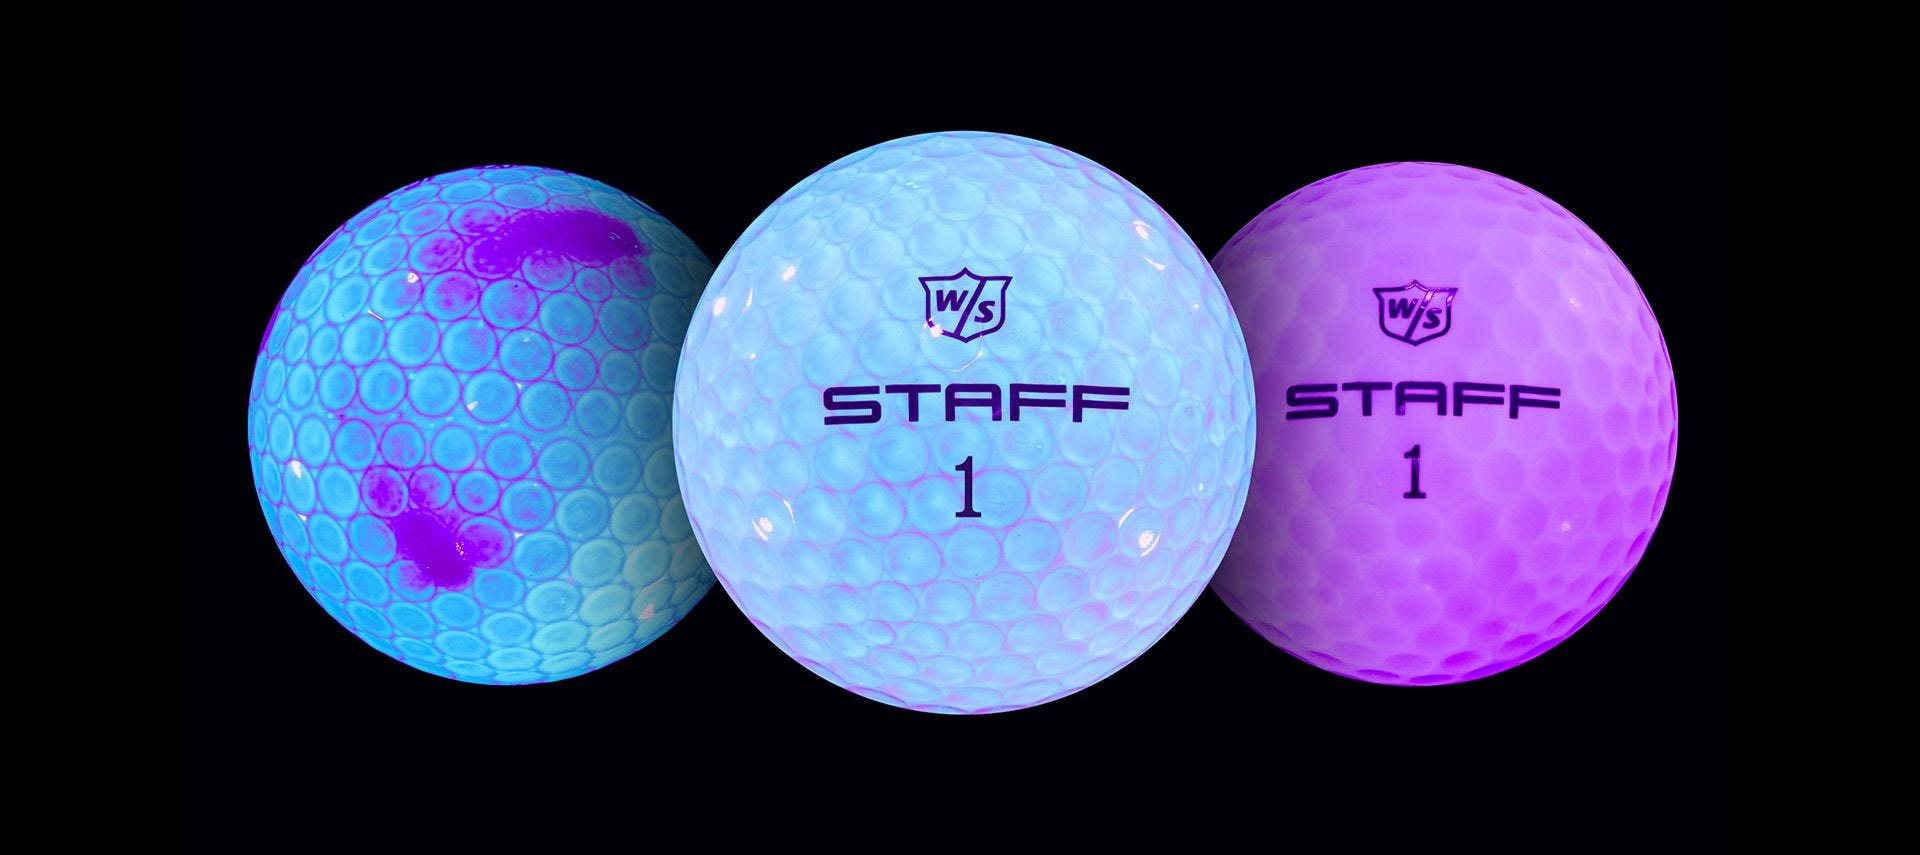 raw golf balls under black light